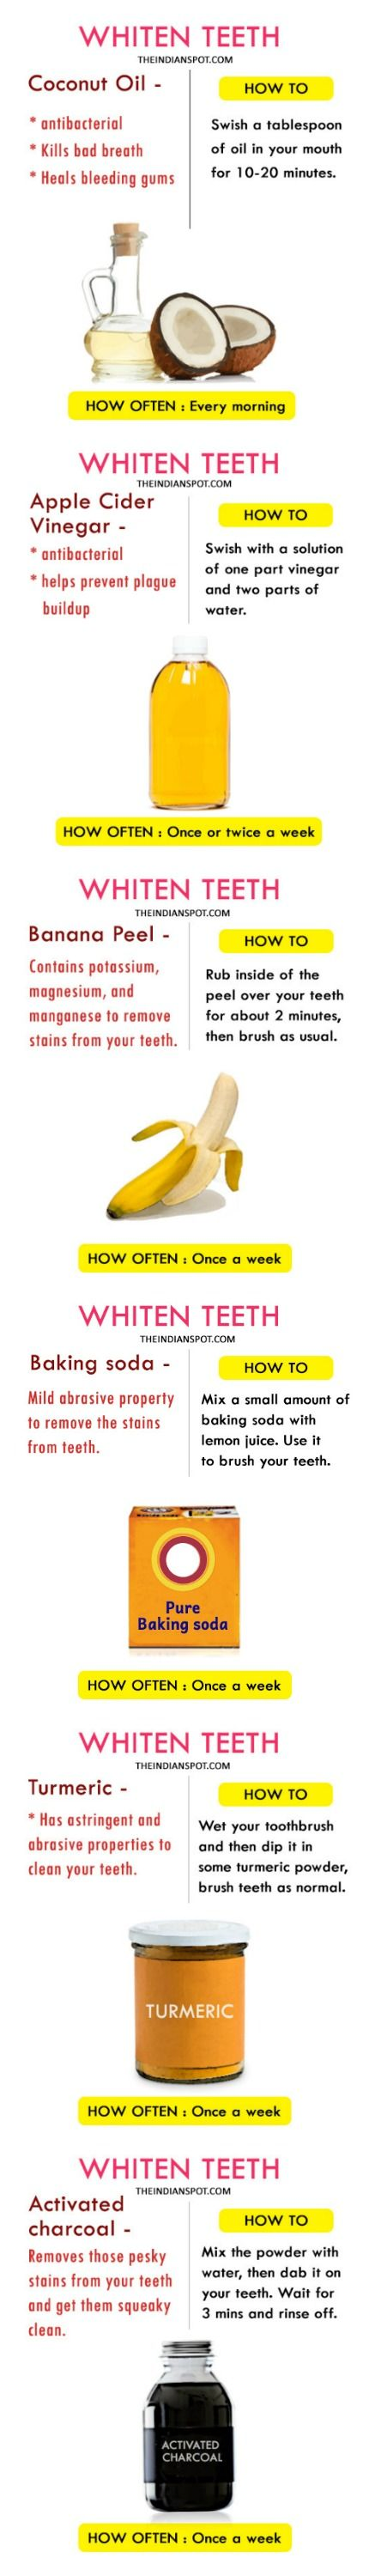 Whiten teeth recipe. http://getfreecharcoaltoothpaste.tumblr.com